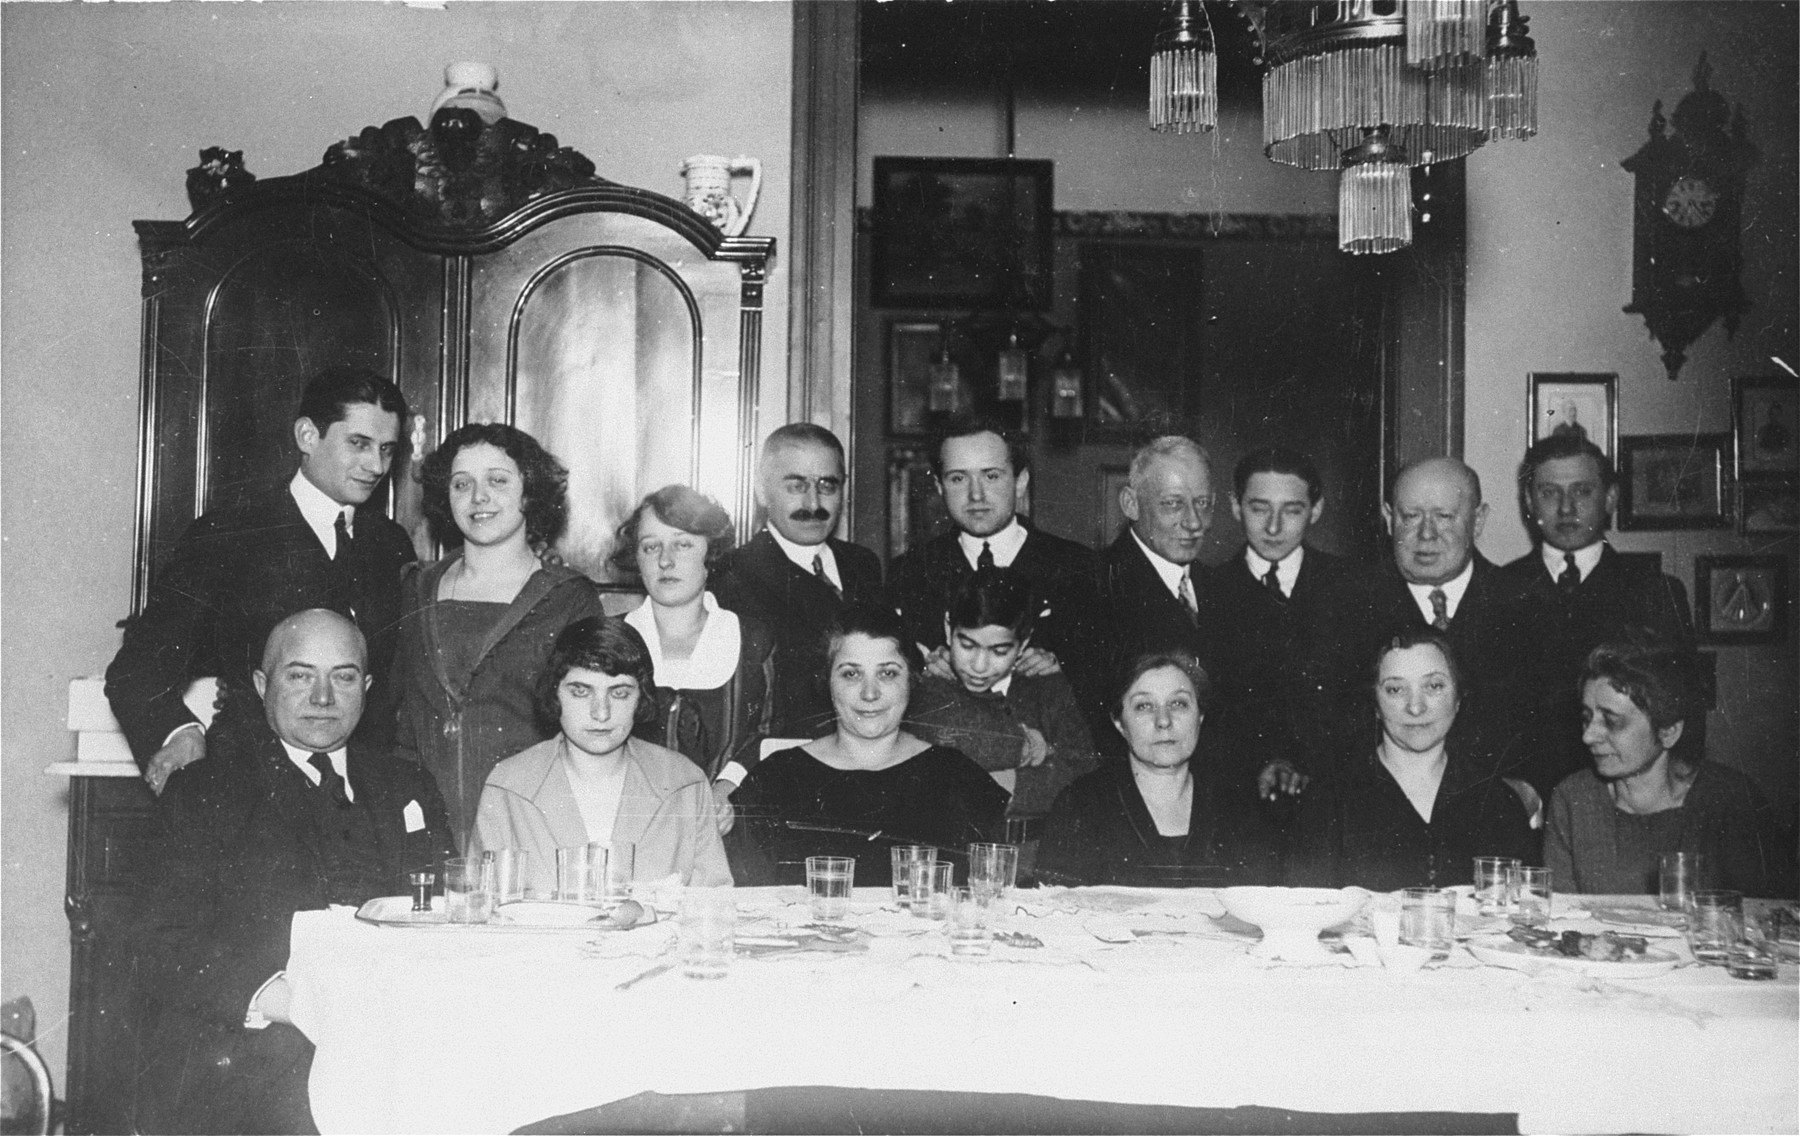 Group portrait of the extended Spitzer family in their dining room.    Pictured in the front row from left to right are: Bela Spitzer, Erzsebet Gyarto, Gizella (Spitzer) Gyarto, Malvina (Spitzer) Kornhauser, Olga (Spitzer) Kulka and Szeren Spitzer.  In the second row from left to right are: Lajos Ritcher, Rozsa (Kulka) Ritcher, Margit Kornhauser, Marcell Gyarto, Jeno Kulka, Samu Kornhauser, Laszlo Kornhauser, Fulop Kulka and Karoly Kornhauser.  The young boy in the middle is Tibor Gyarto.